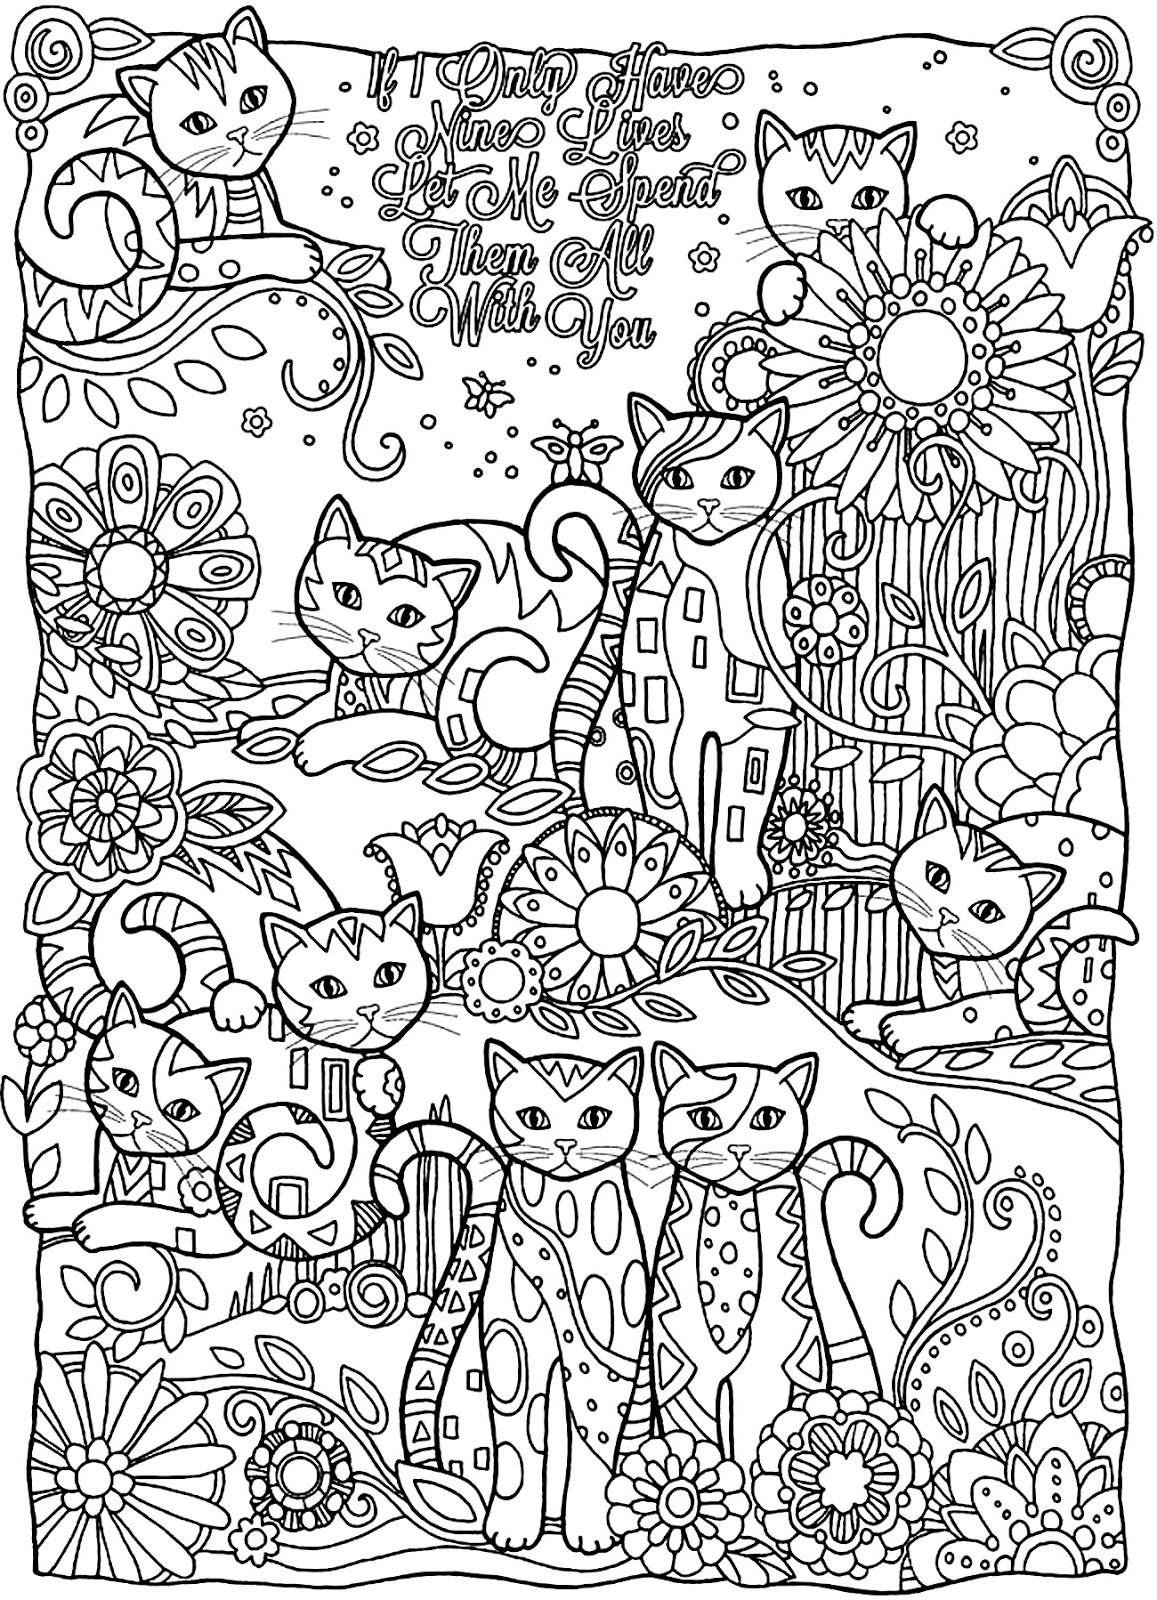 Coloring Page ~ Adult Coloring Pages Dr Odd Excelent Free Printable pertaining to August Printable Images To Color